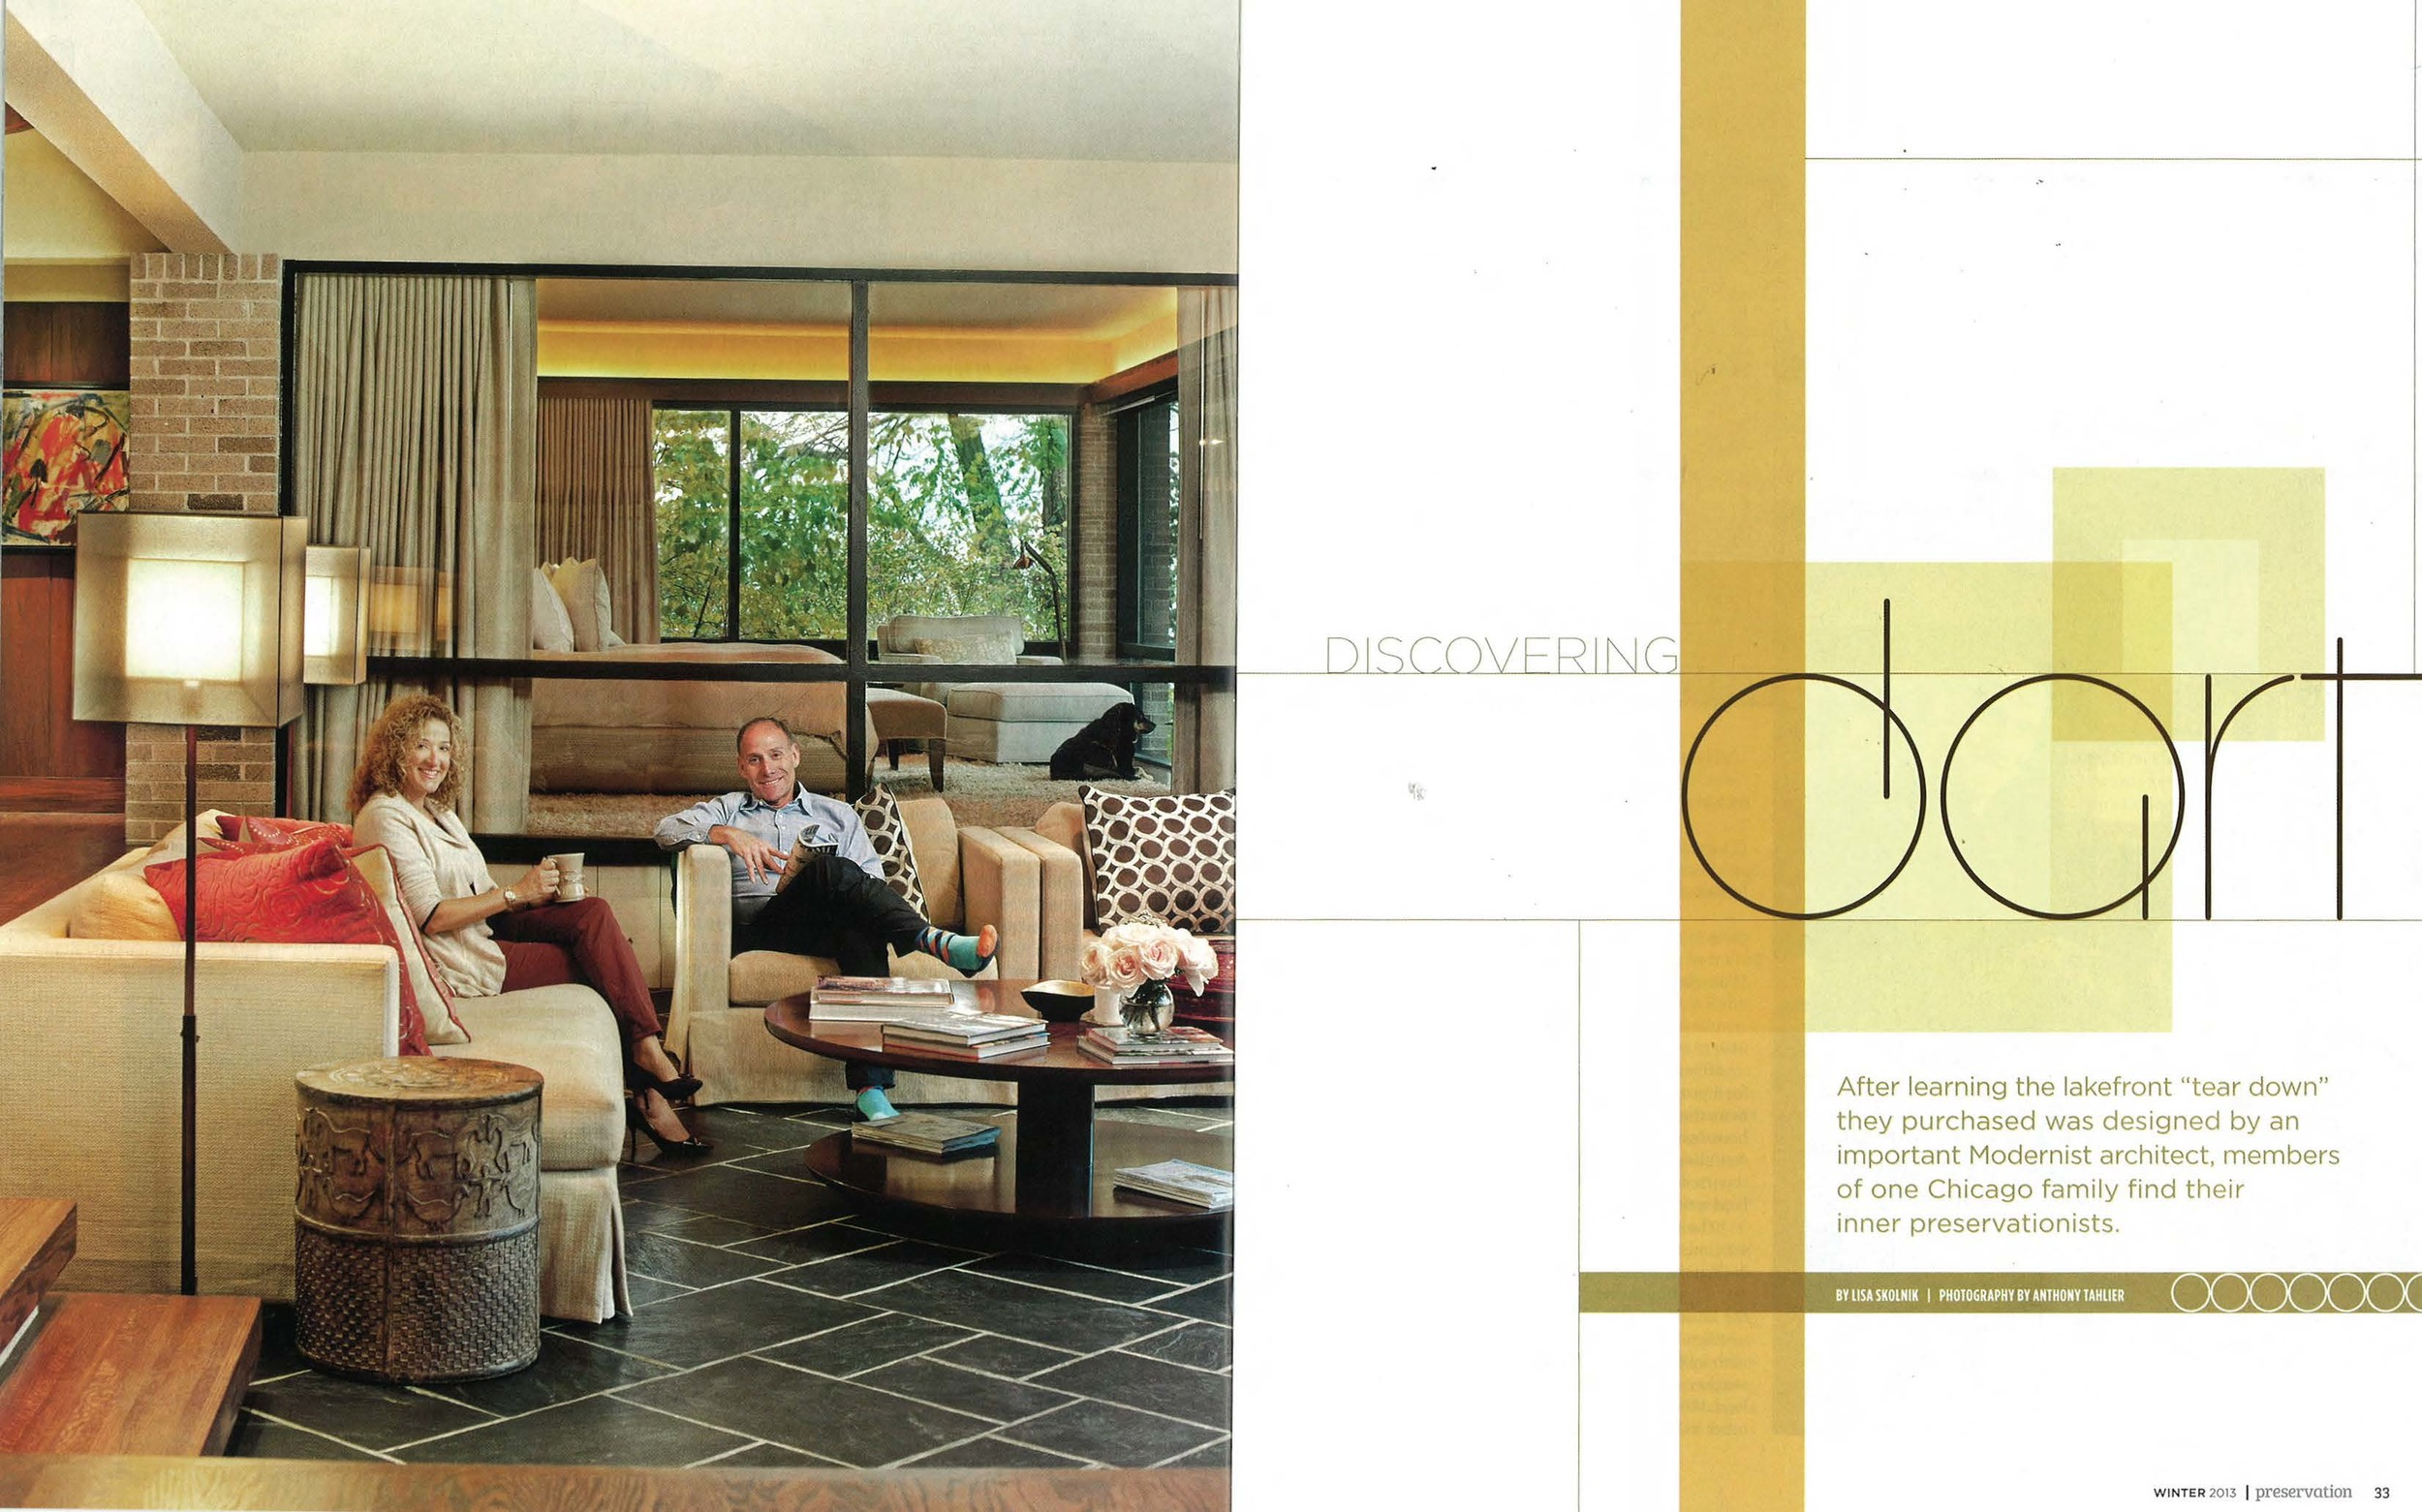 2013 Preservation Magazine Winter 2013_Page_3.jpg